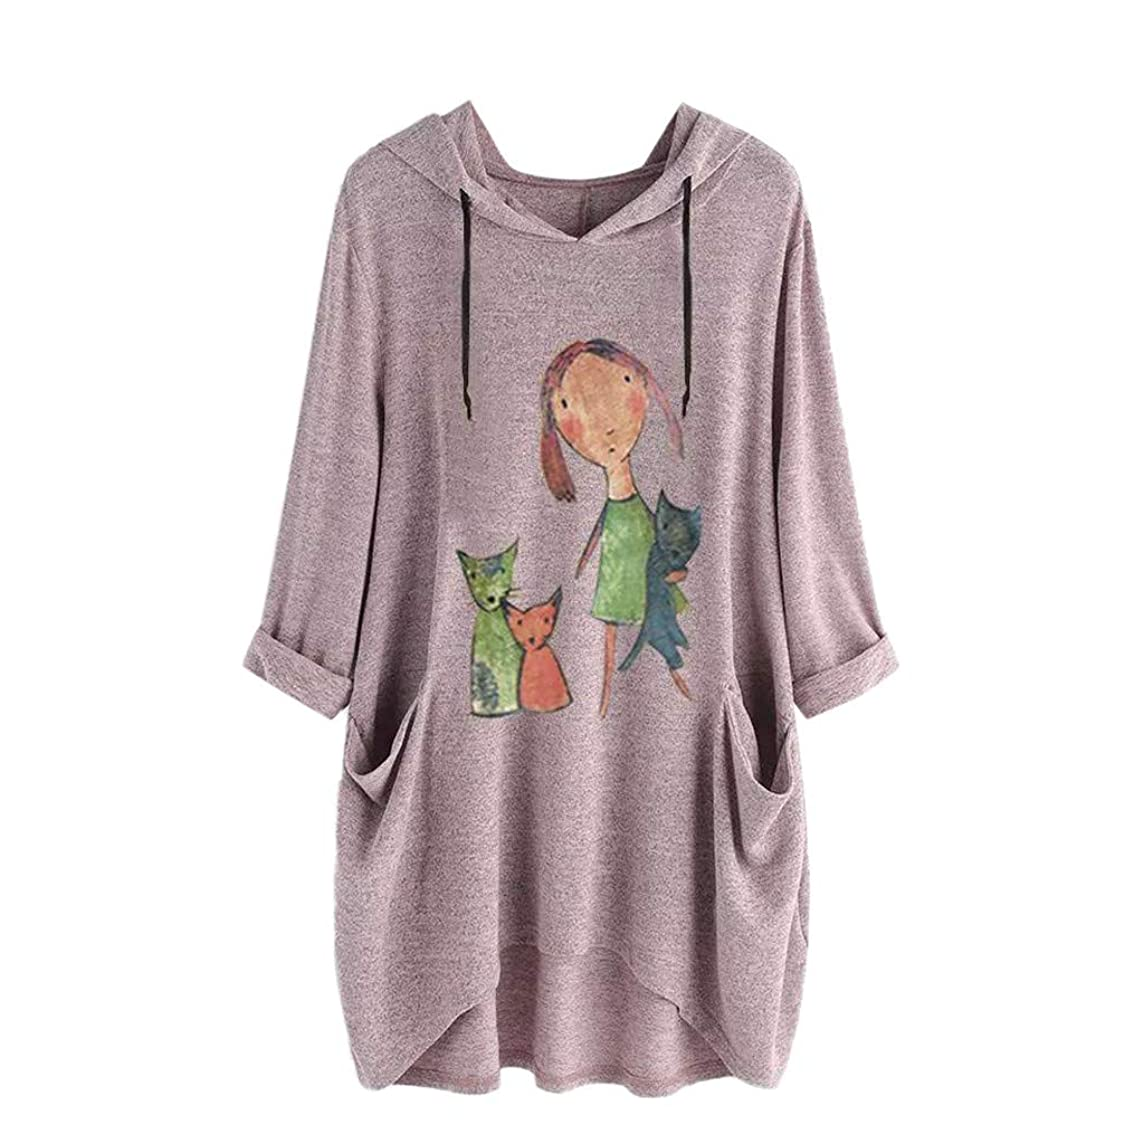 Willow S Women Fashion Comfy Casual Cute Print Long Sleeve Side Pocket Hooded Irregular Loose Top Blouse Hoodies